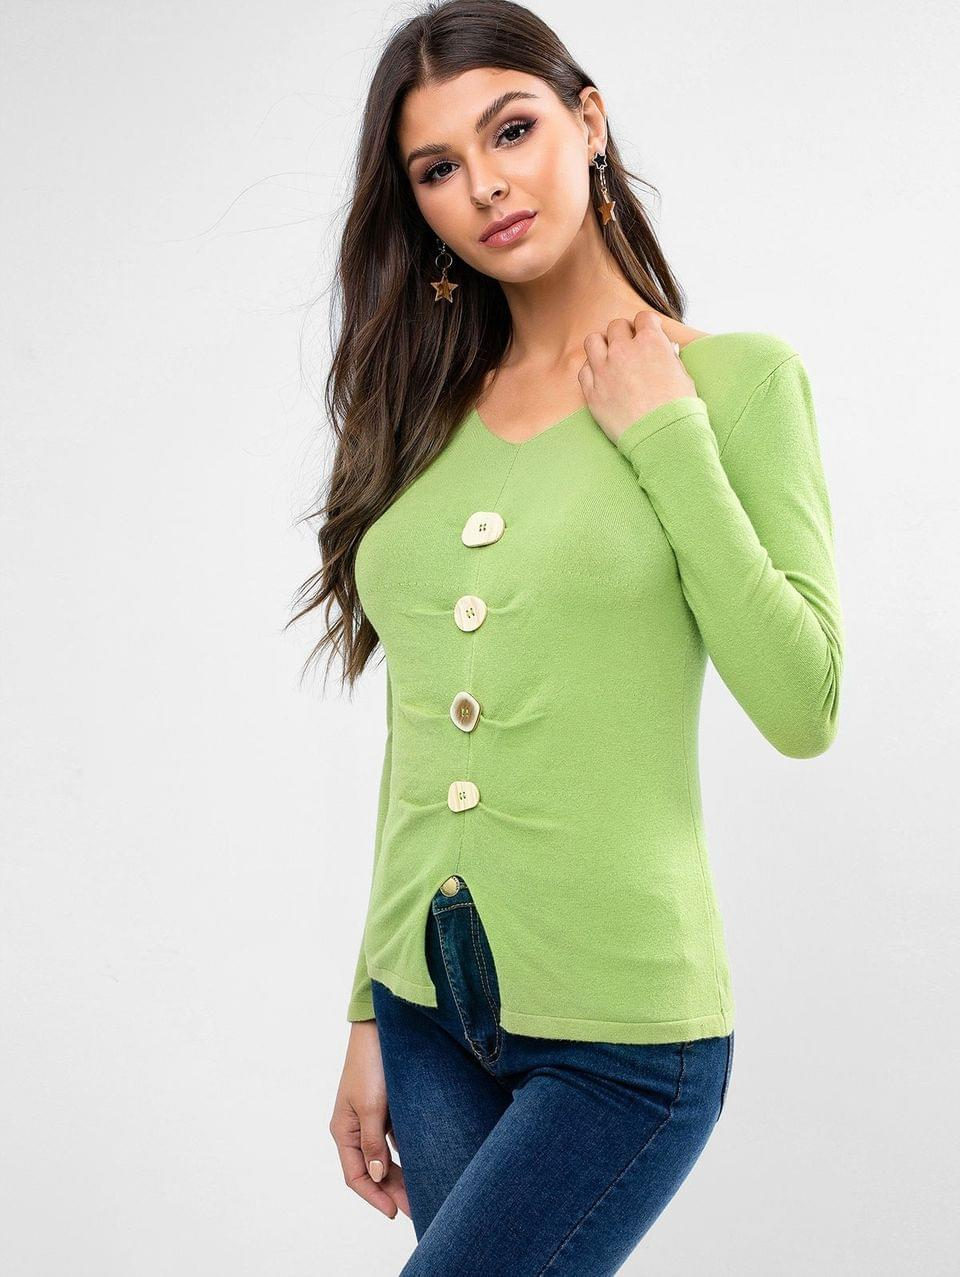 Women's Pullover Mock Button V Neck Sweater - Green Peas